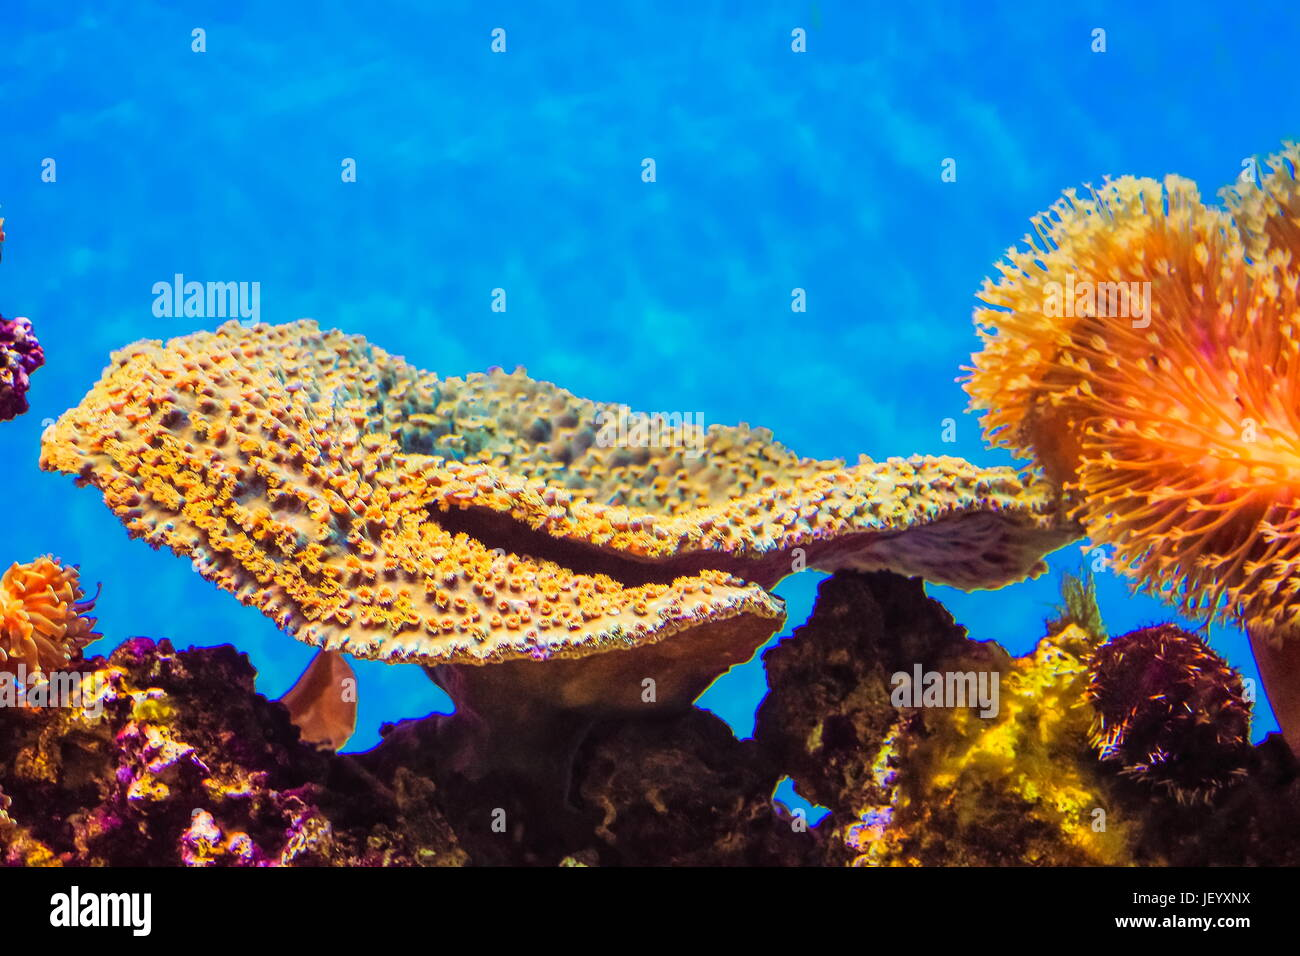 Montipora Coral - Montipora is a genus of small polyp stony coral in the phylum Cnidaria. - Stock Image